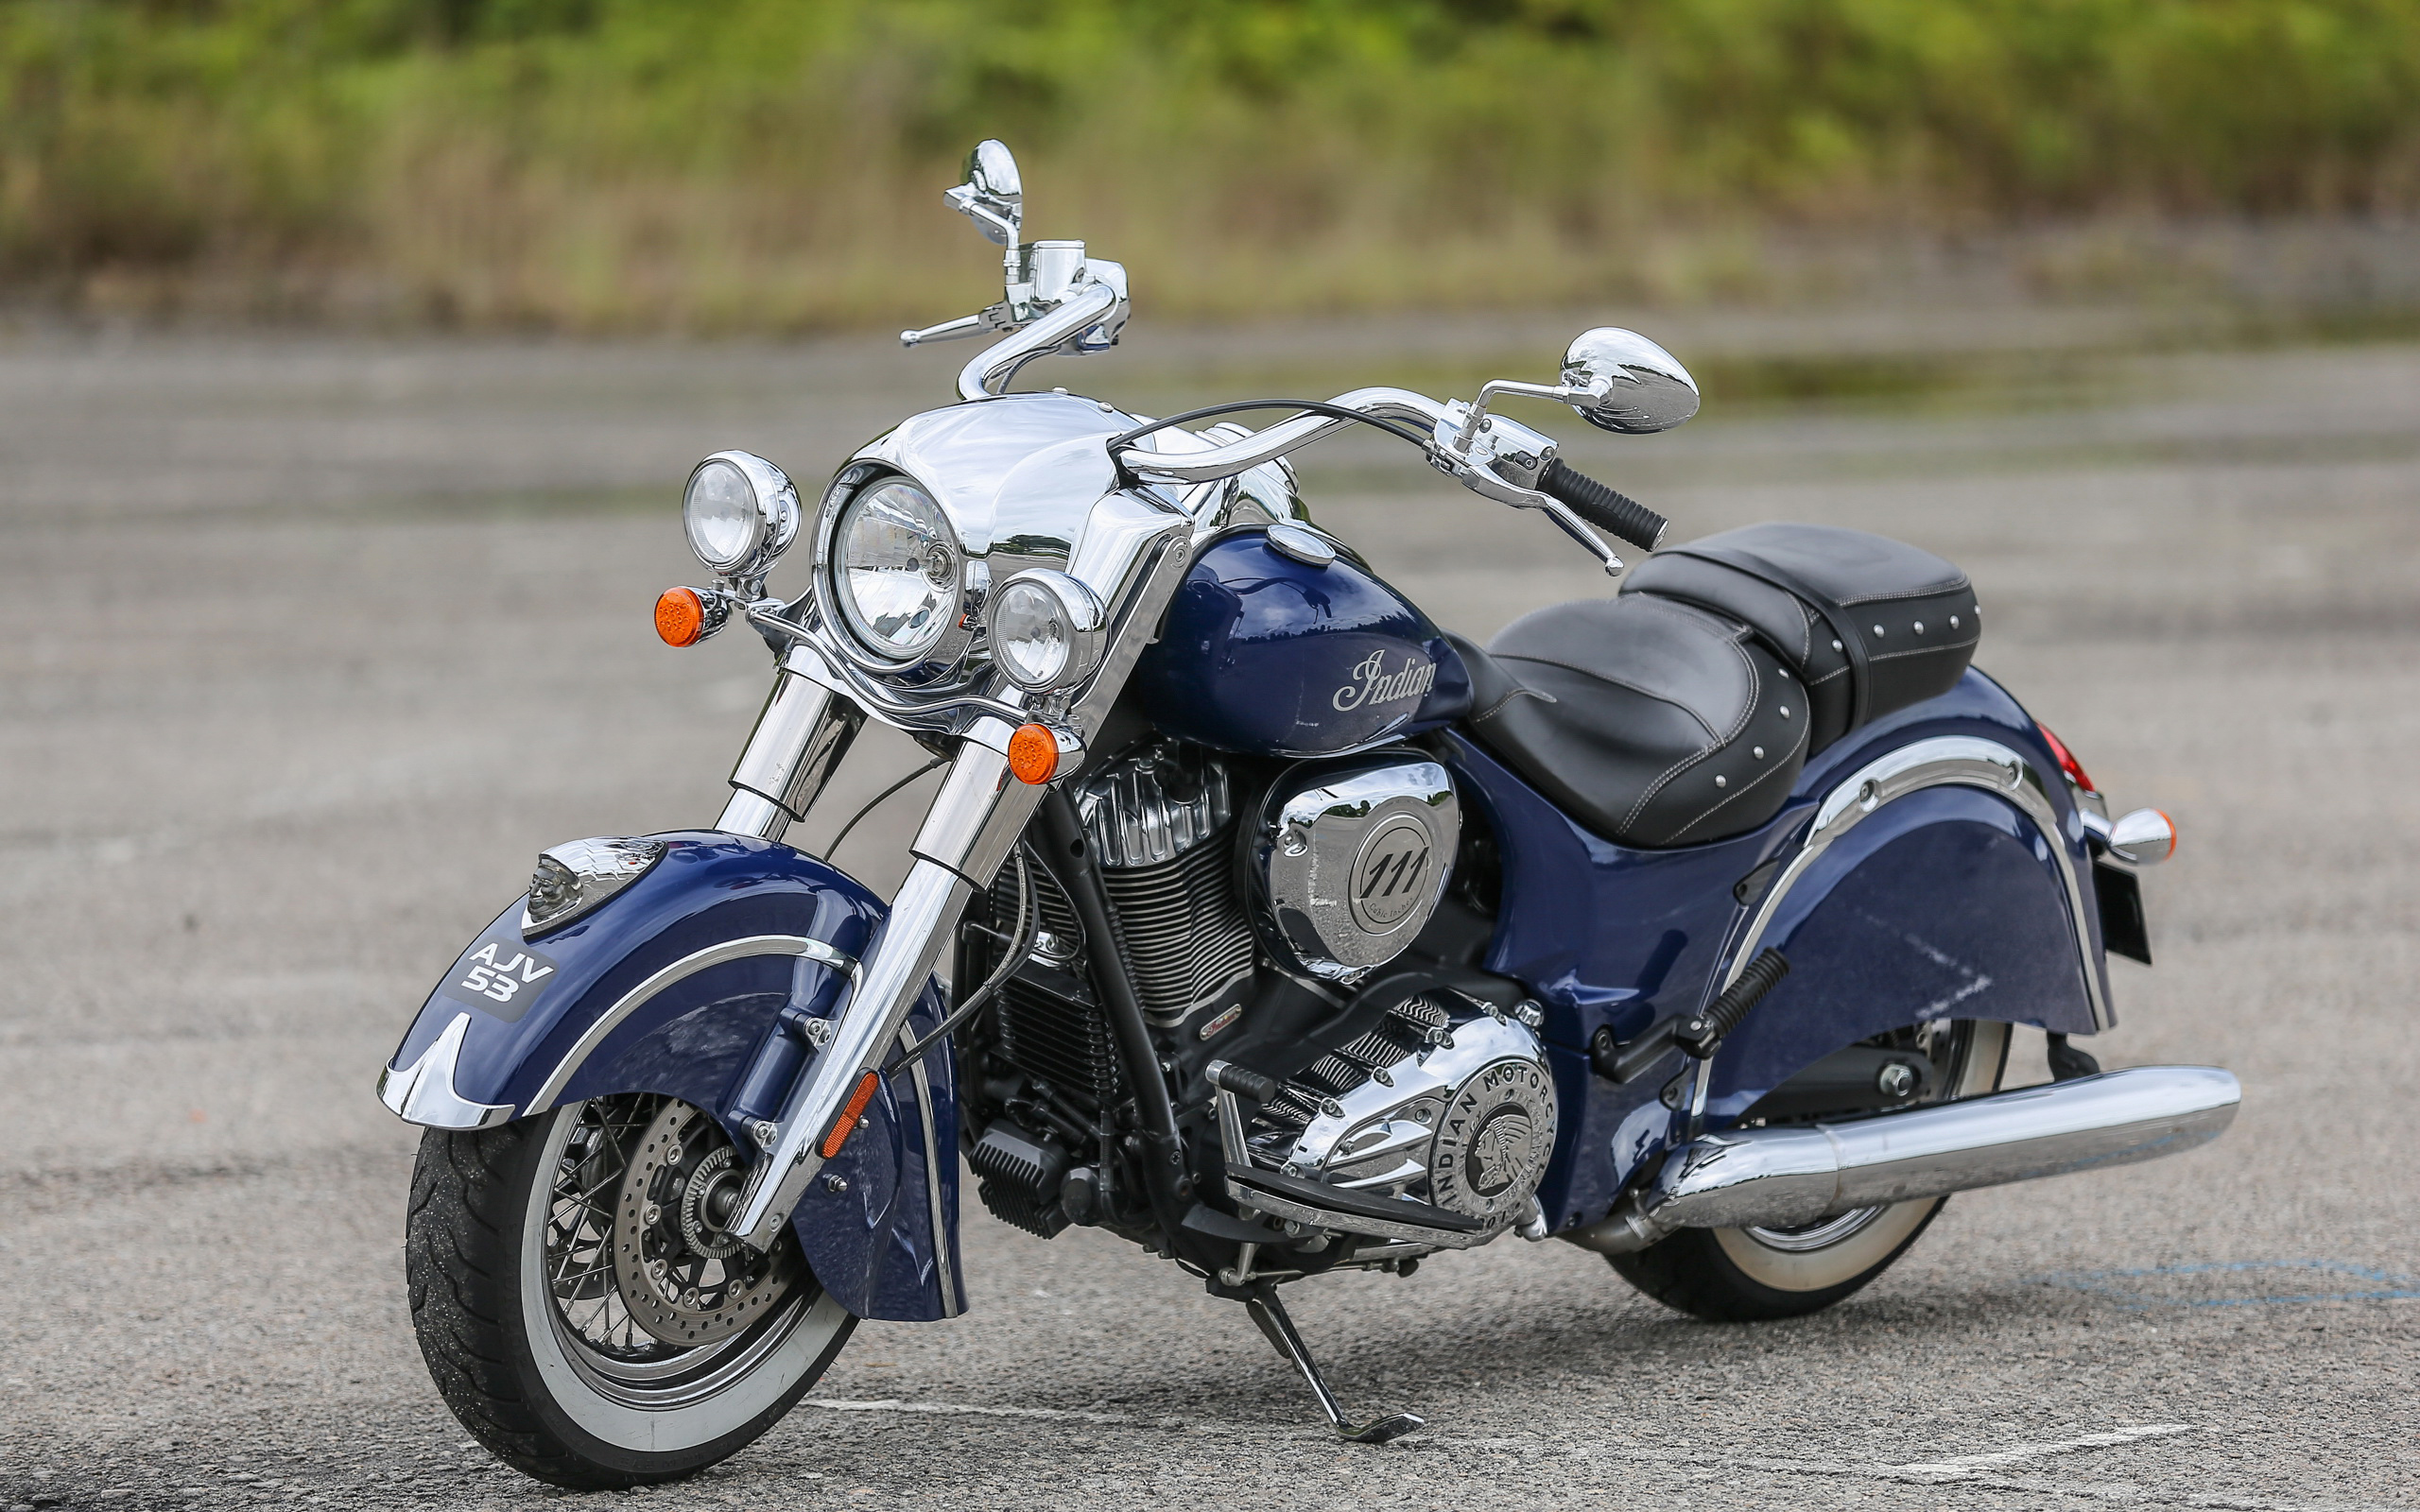 Indian Chief Classic HD Wallpaper